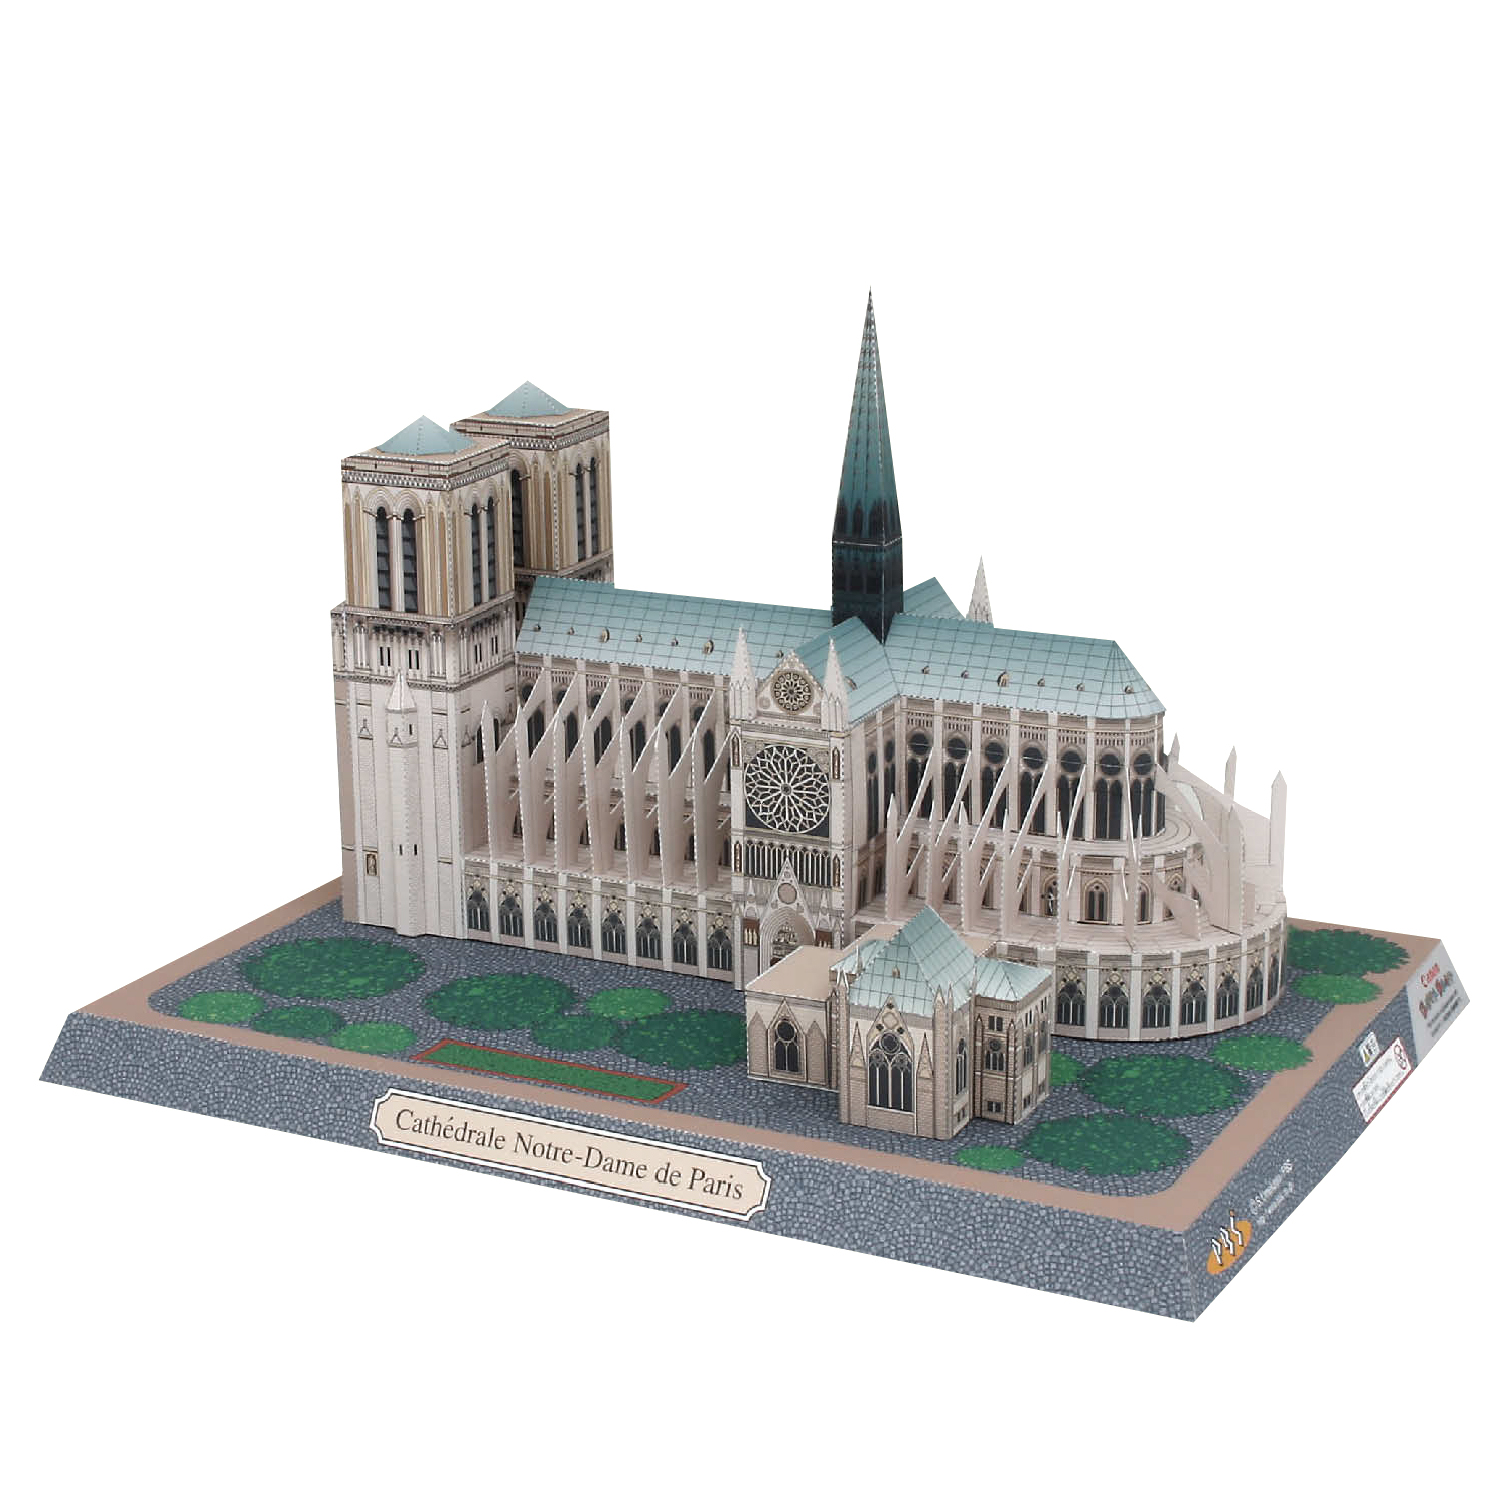 Notre-Dame De Paris, France Craft Paper Model Architecture 3D  DIY Education Toys Handmade Adult Puzzle Game